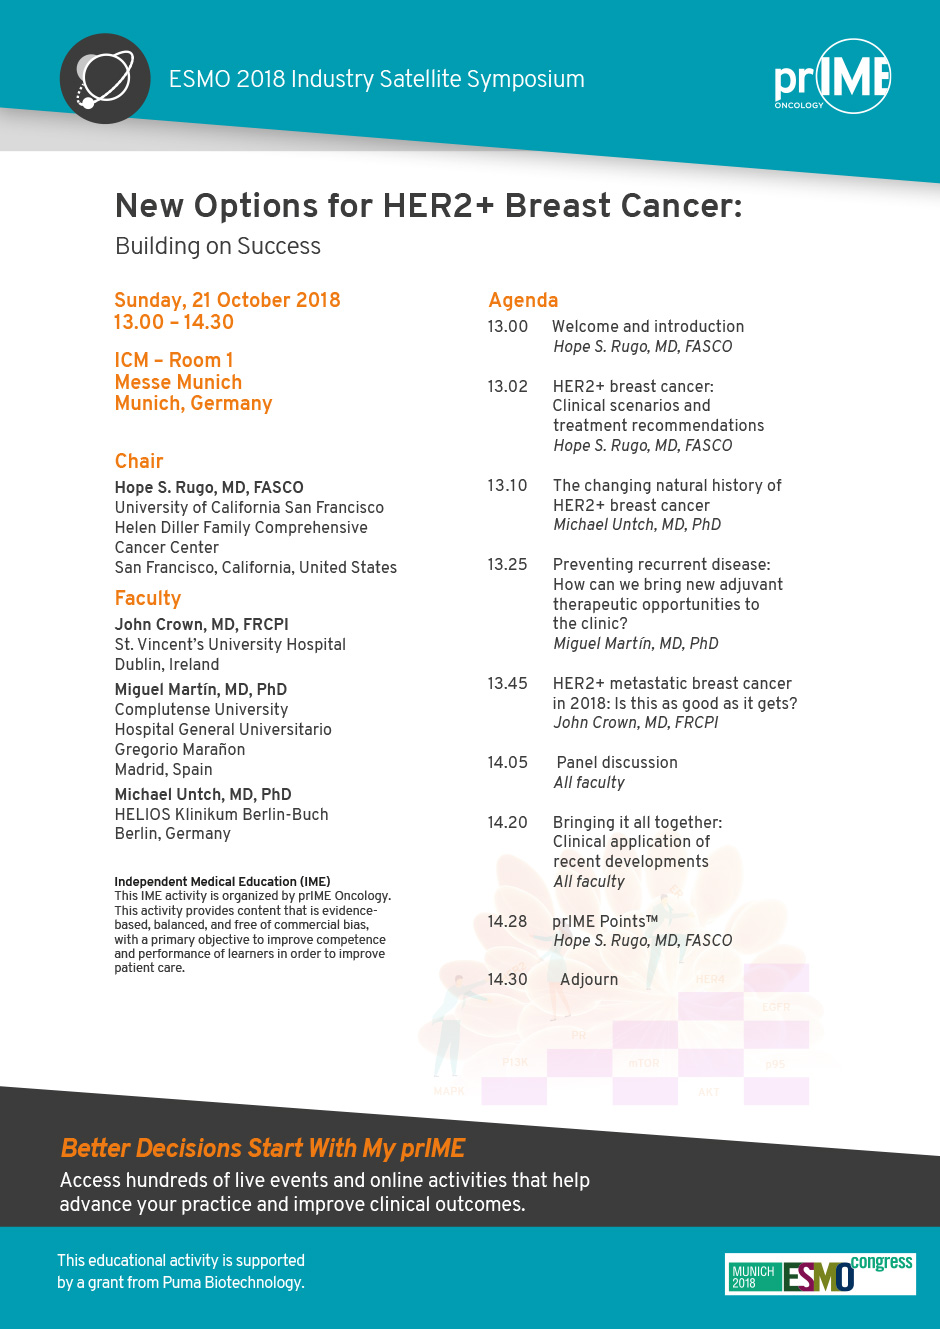 New Options for HER2+ Breast Cancer: Building on Success